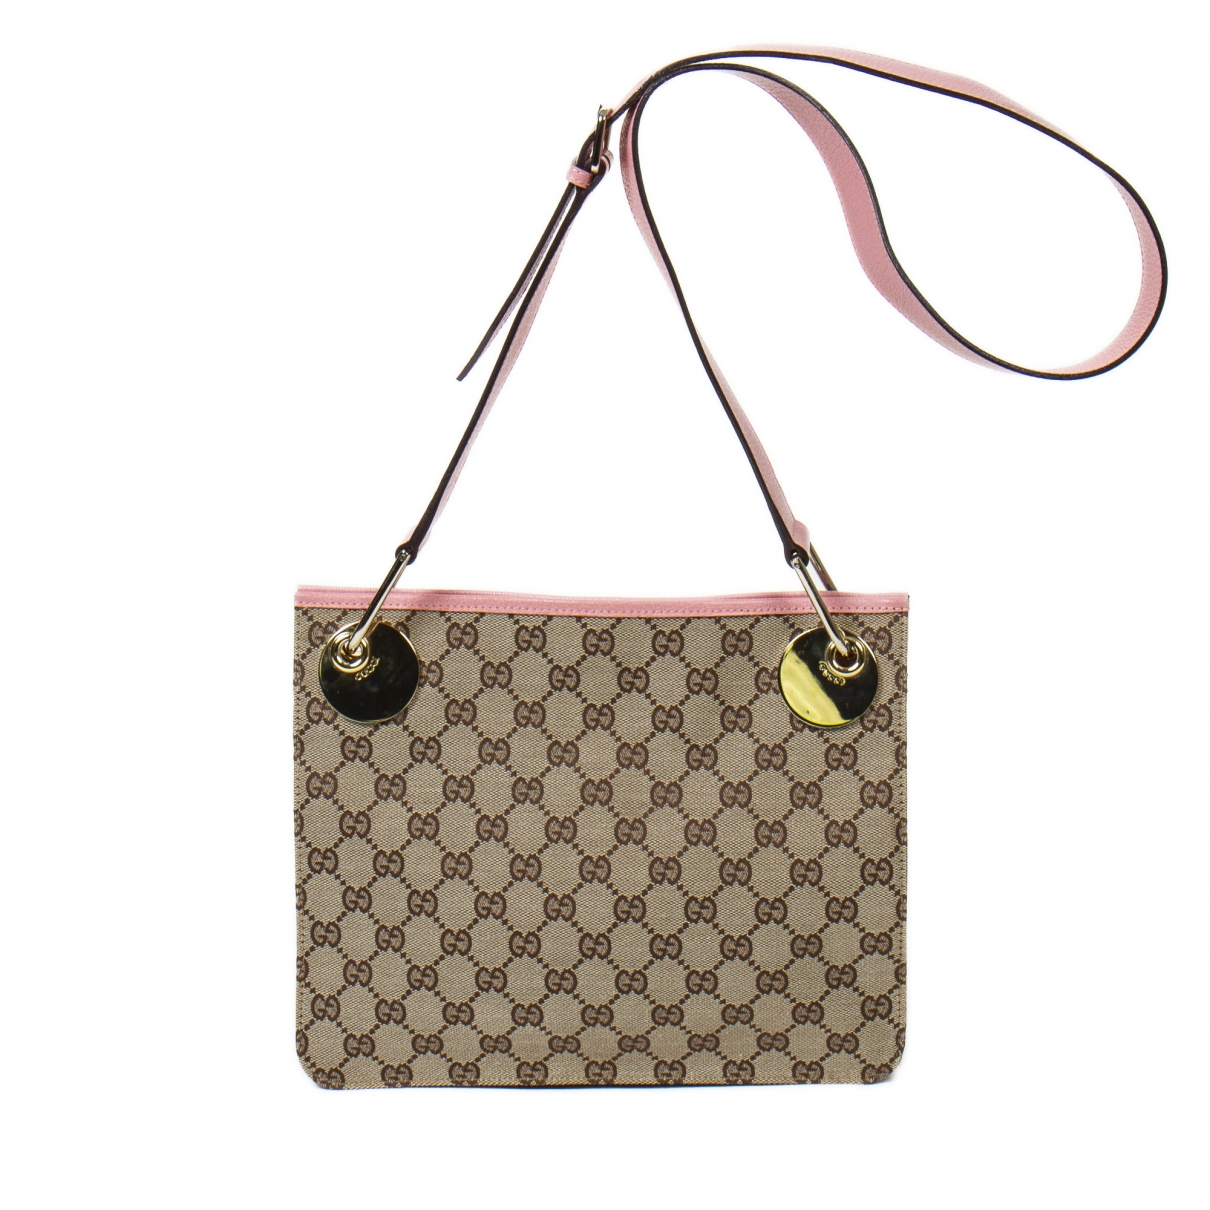 Gucci \N Cotton handbag for Women \N